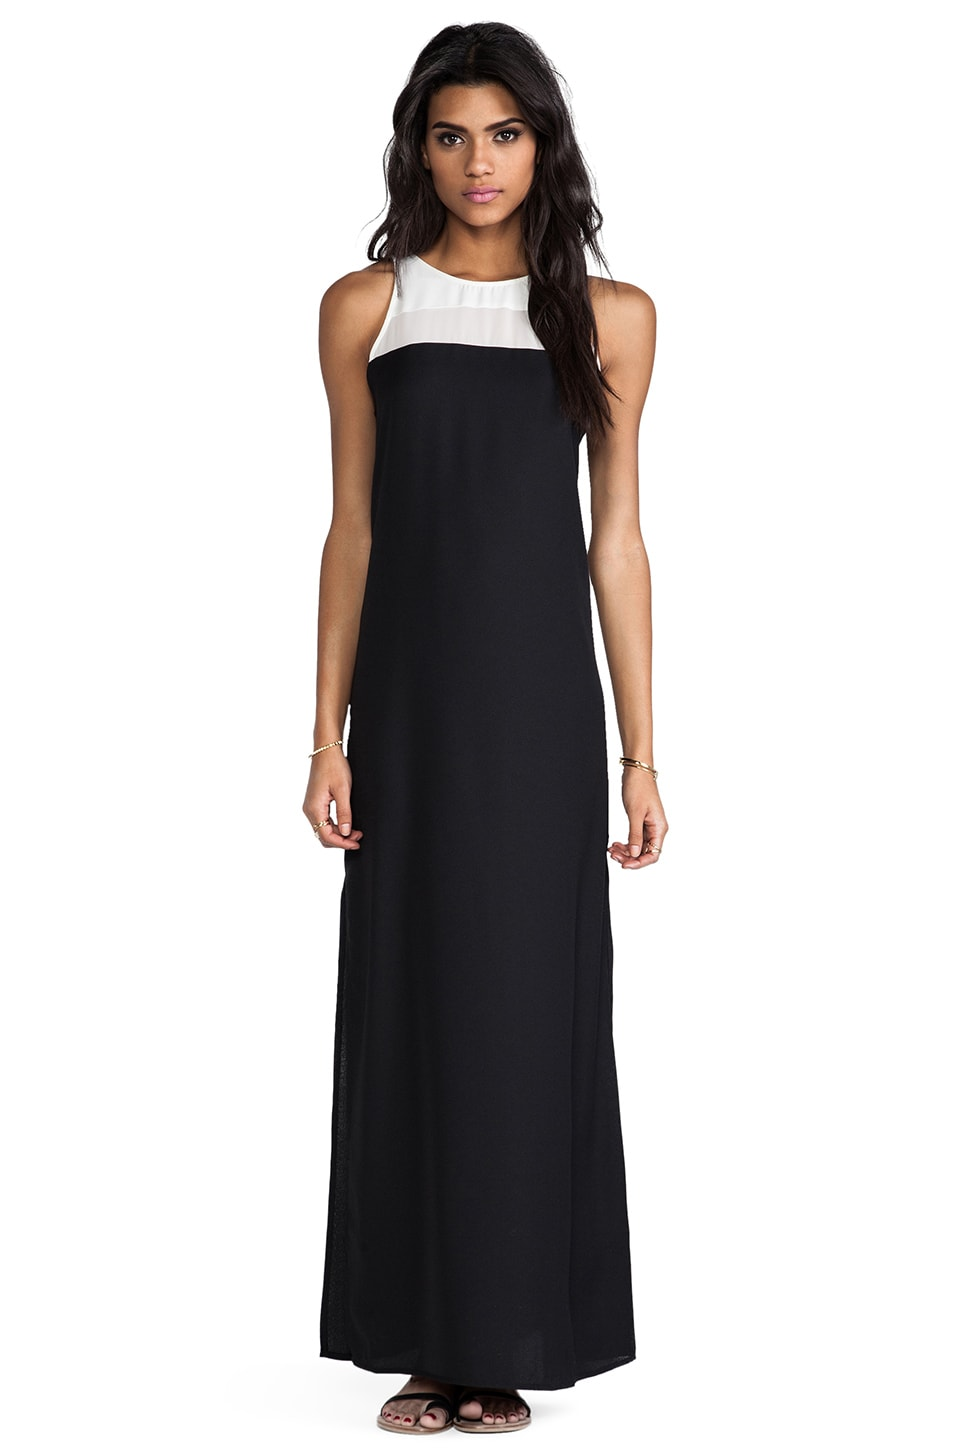 BB Dakota Sola Maxi Dress in Black